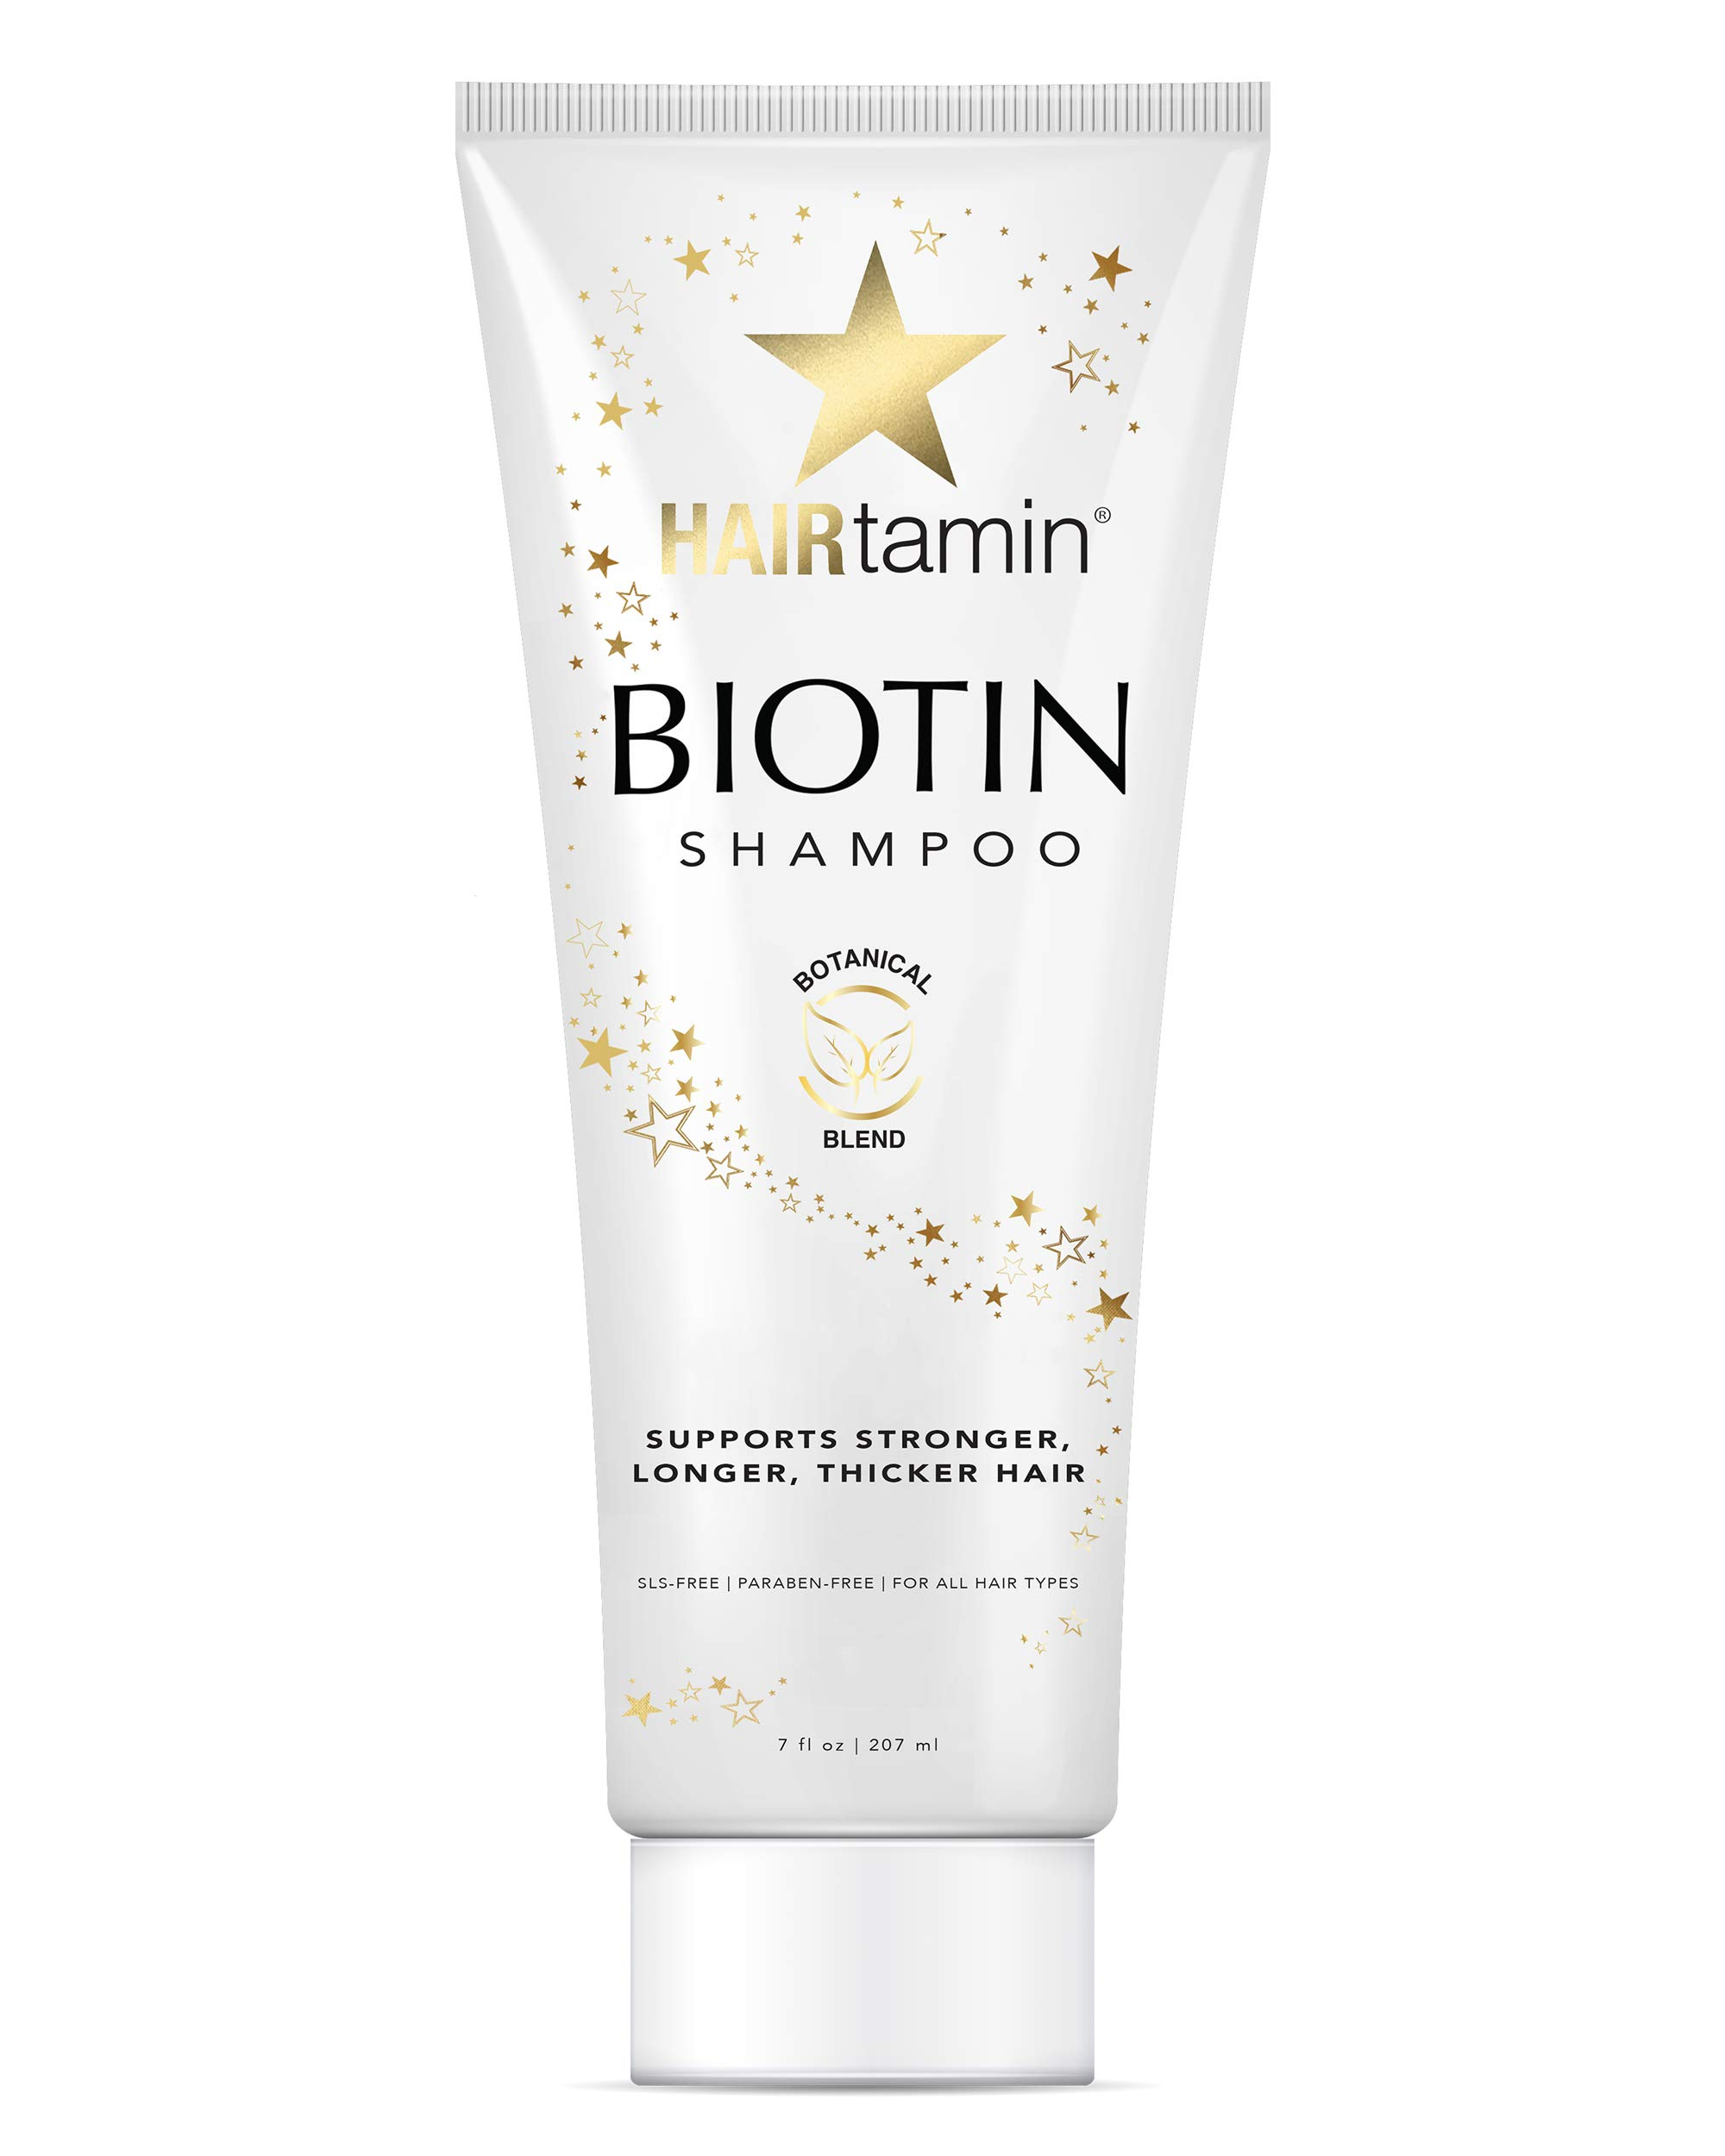 Hairtamin Biotin Hair Growth Shampoo, Promotes Healthy Growing Hair and Strength with Hydrating Vitamin Rich Formula in this Sulfate Free Shampoo, Made With Vitamin B5, Cucumber Extract, Aloe Vera